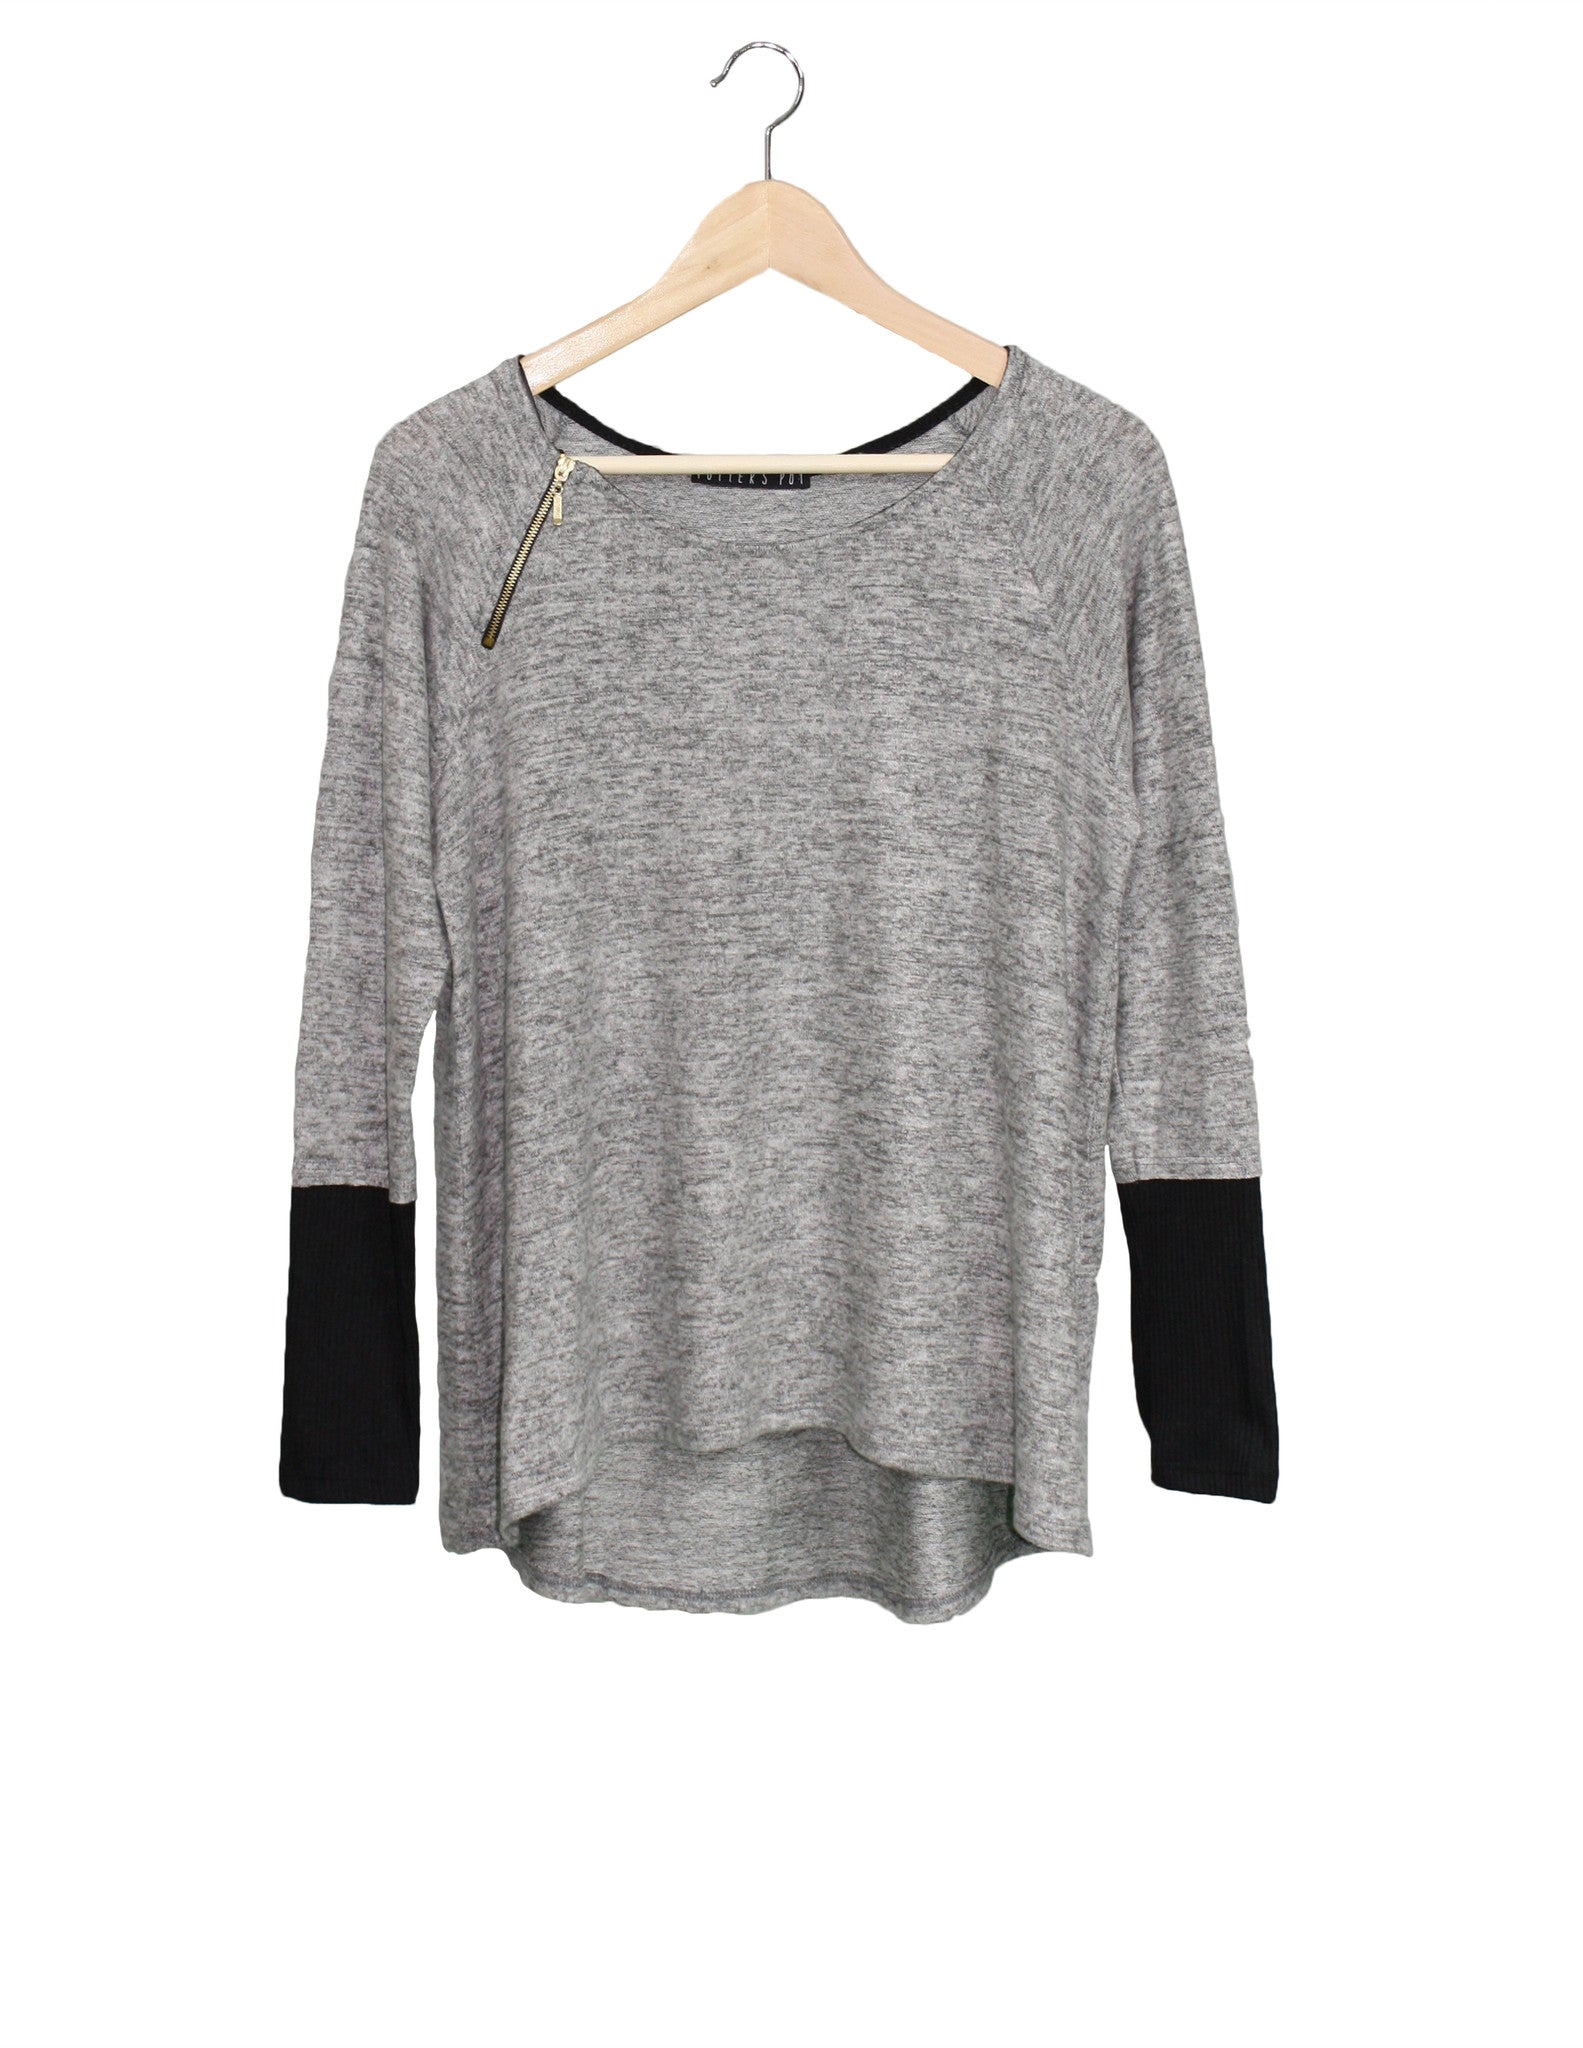 Grey Top with Side Zip / Ethical Fashion